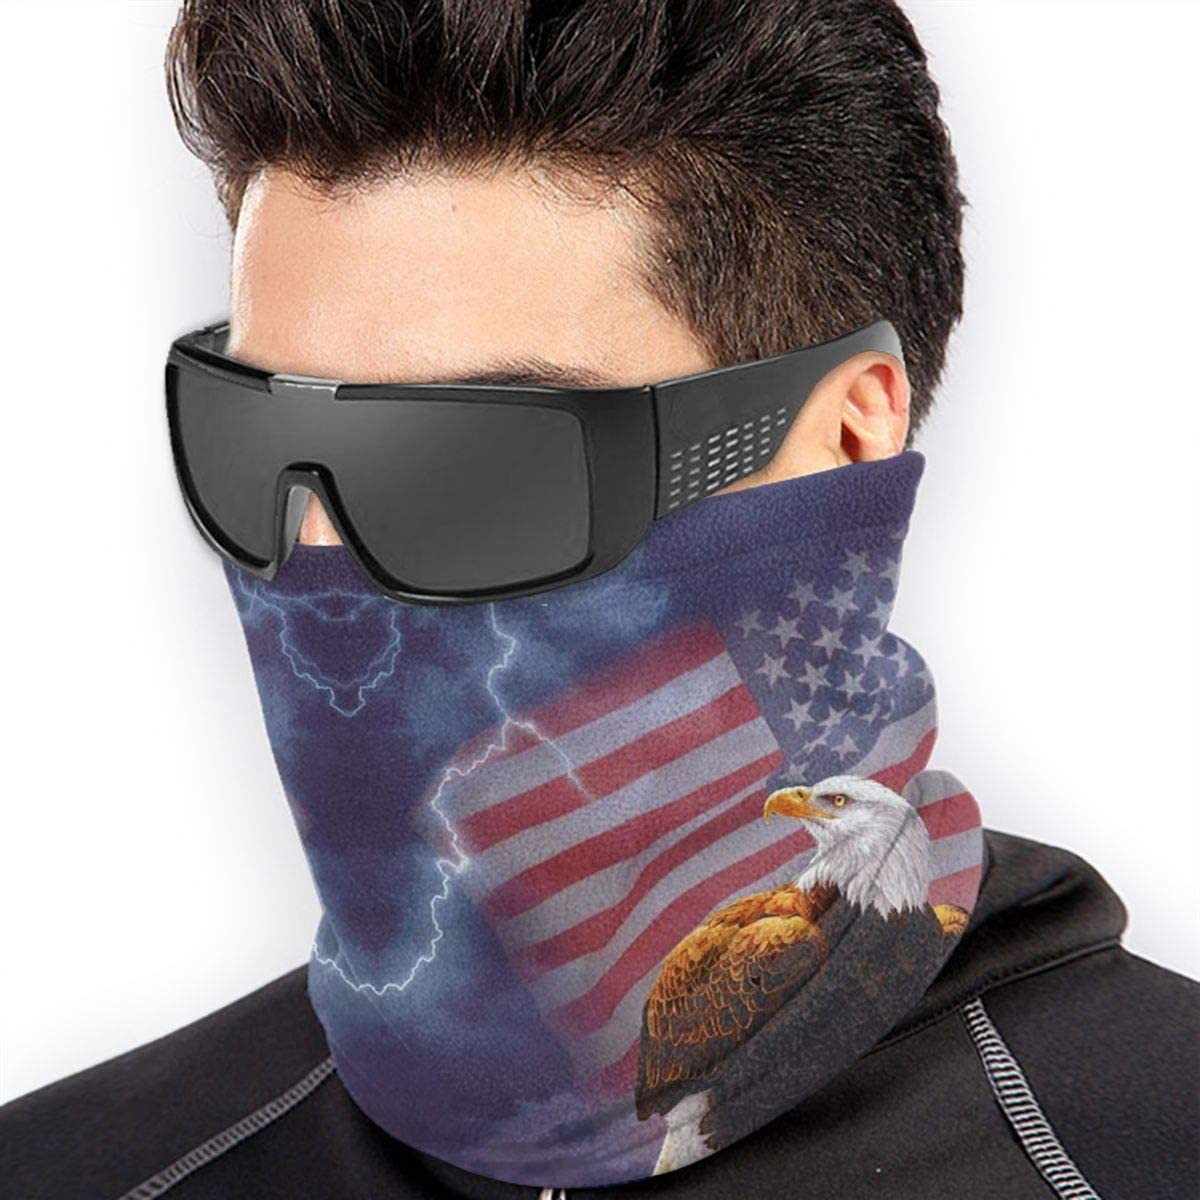 American Bald Eagle Neck Gaiter Headwear Headband Head Wrap Scarf Mask Neck/Ear Warmers Headbands Perfect For Winter Fishing, Hiking, Running, Motorcycle Etc& Daily Wear For Men And Women